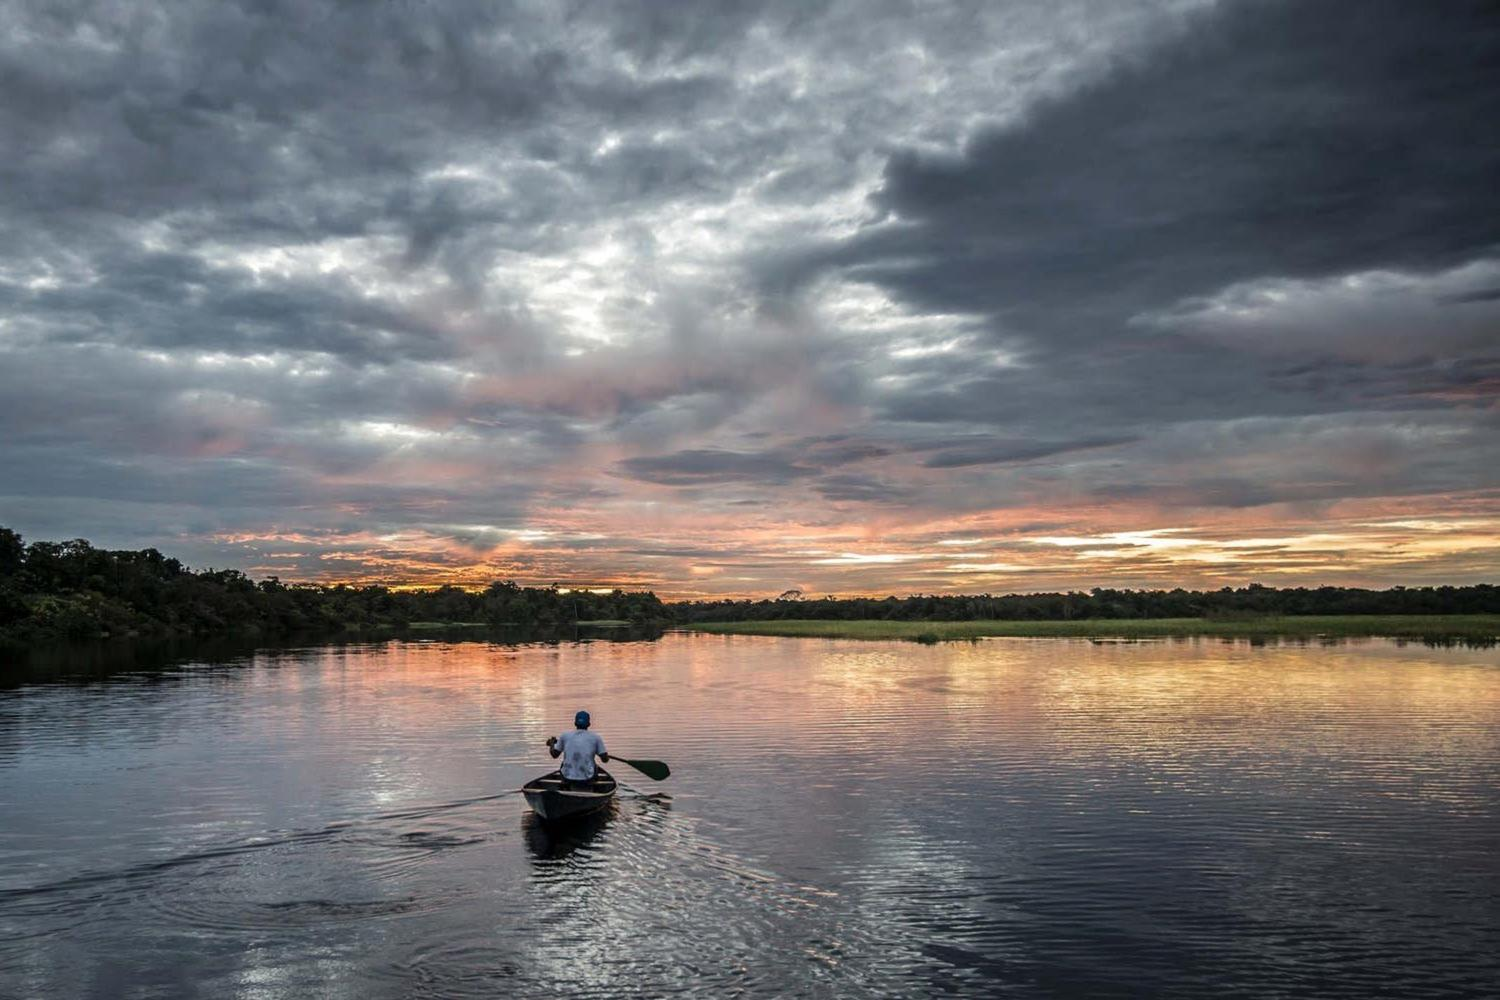 Man sailing the Amazon river at dusk